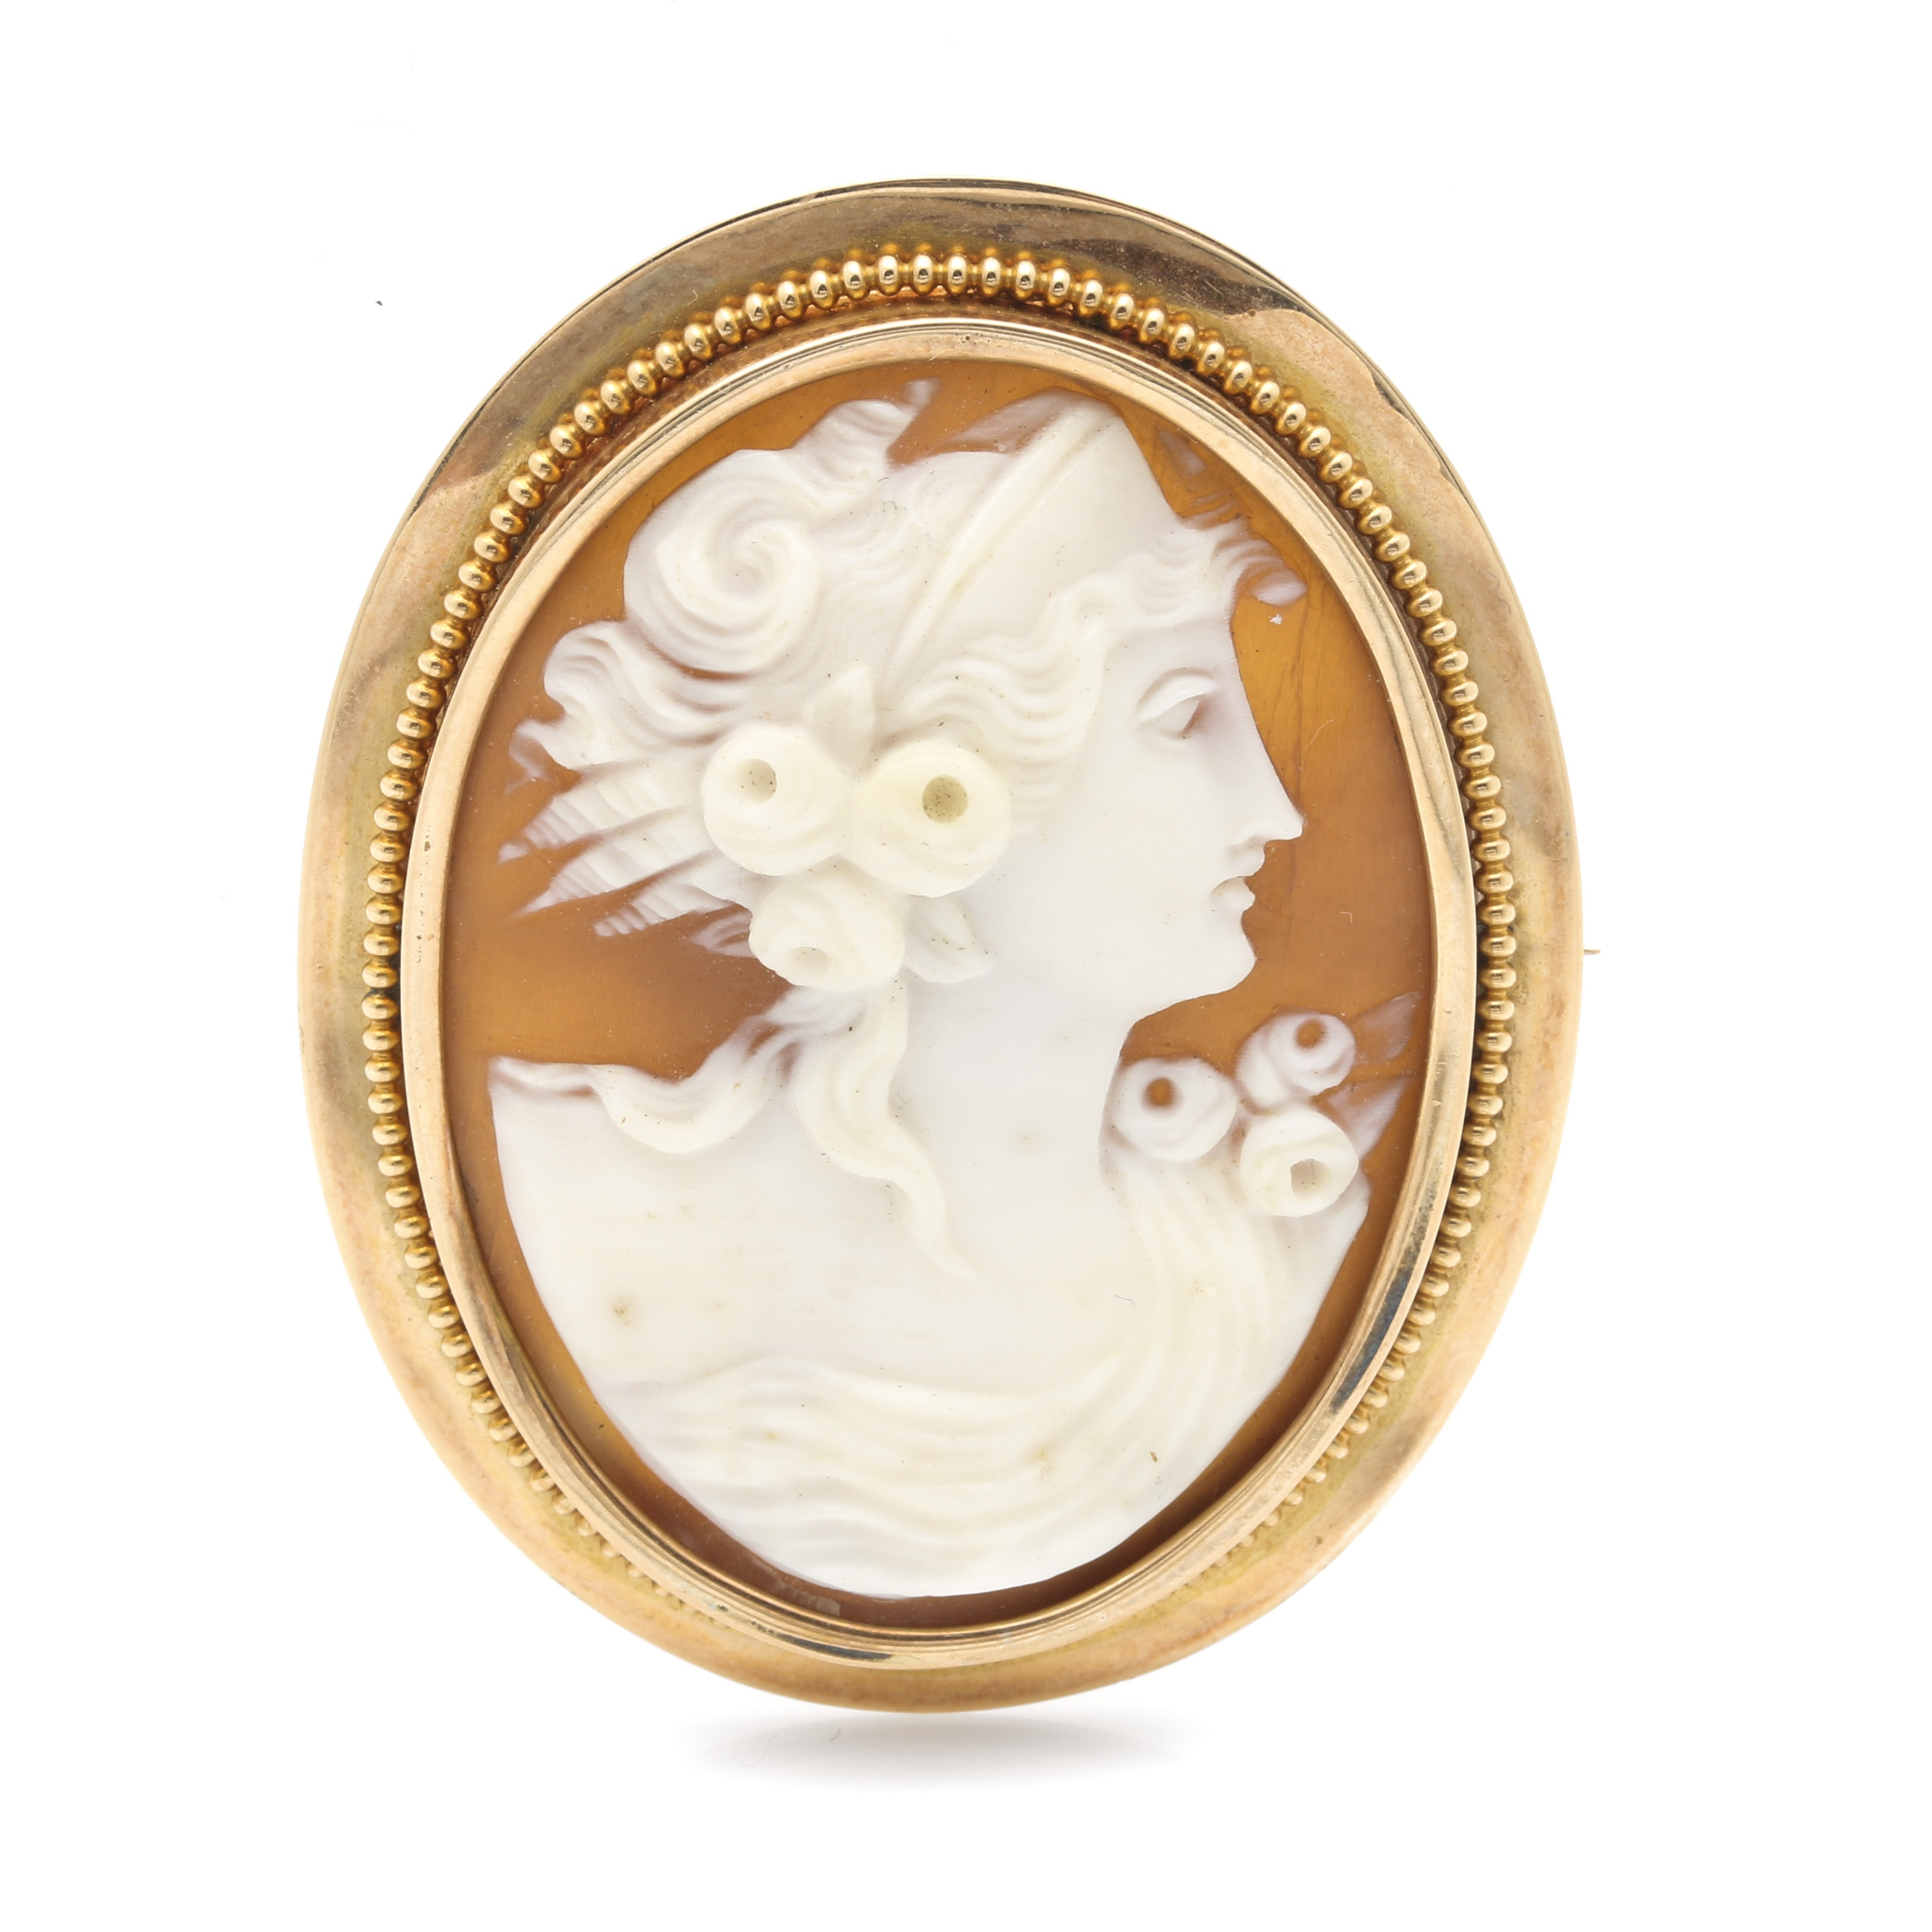 14K Yellow Gold Helmet Shell Cameo Converter Brooch